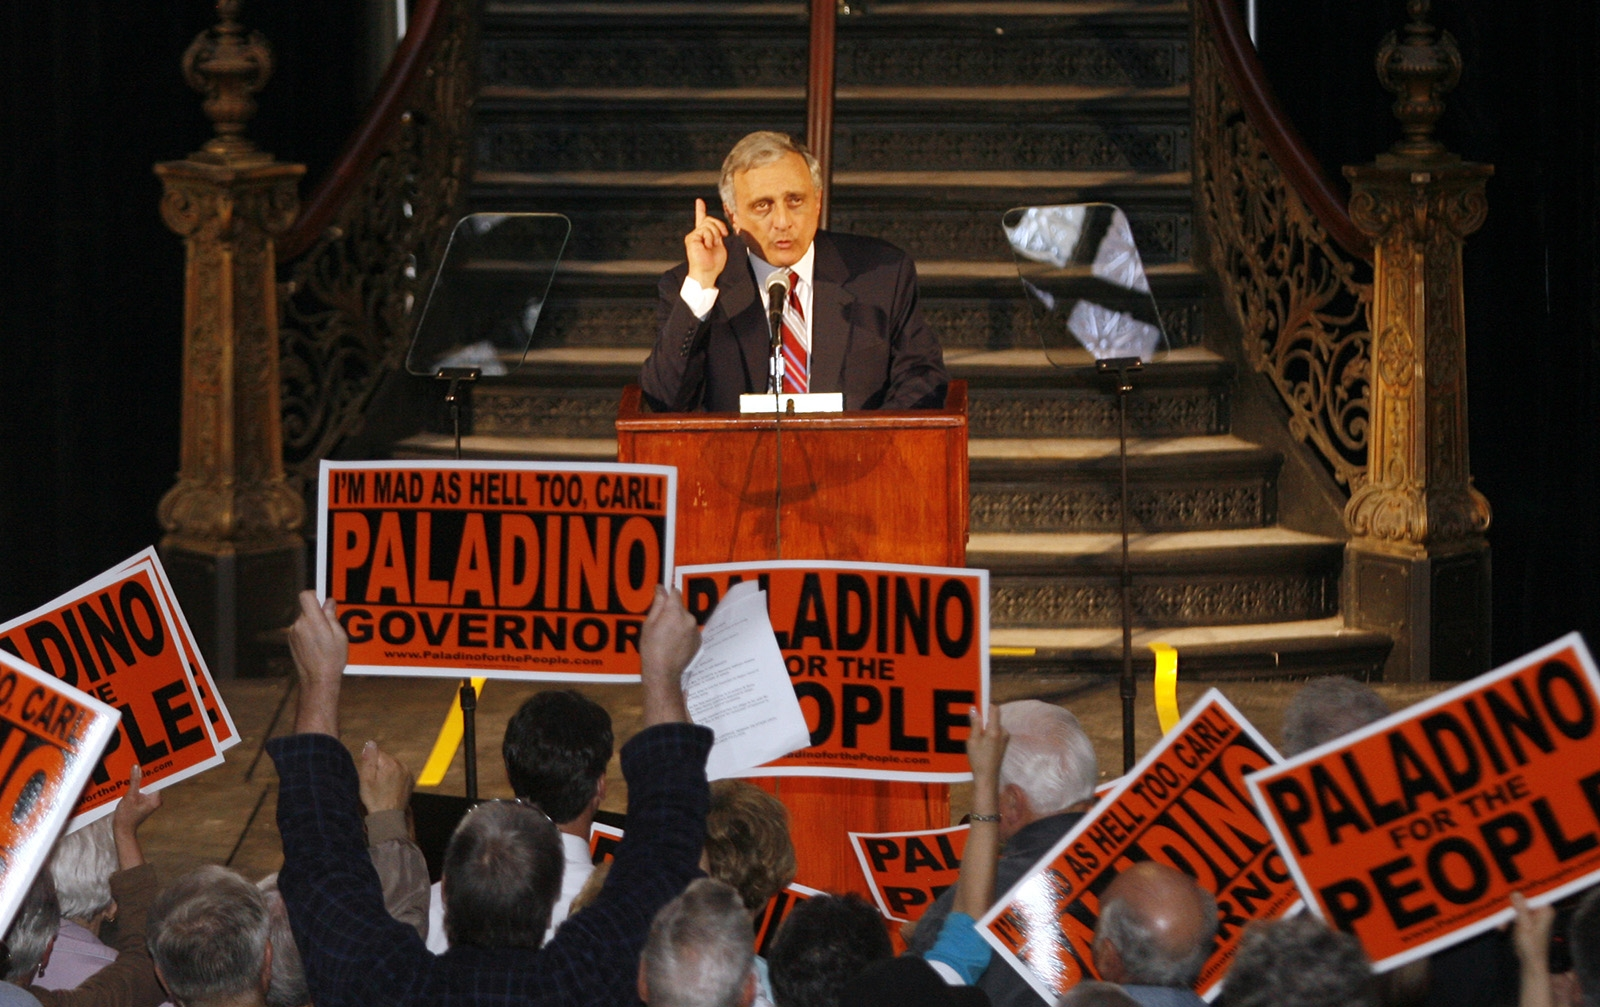 "April 5, 2010: Carl Paladino, seeking to tap into the anger of Tea Party supporters and voters disgruntled with u201cthe Albany ruling class,"" announces GOP bid for governor."